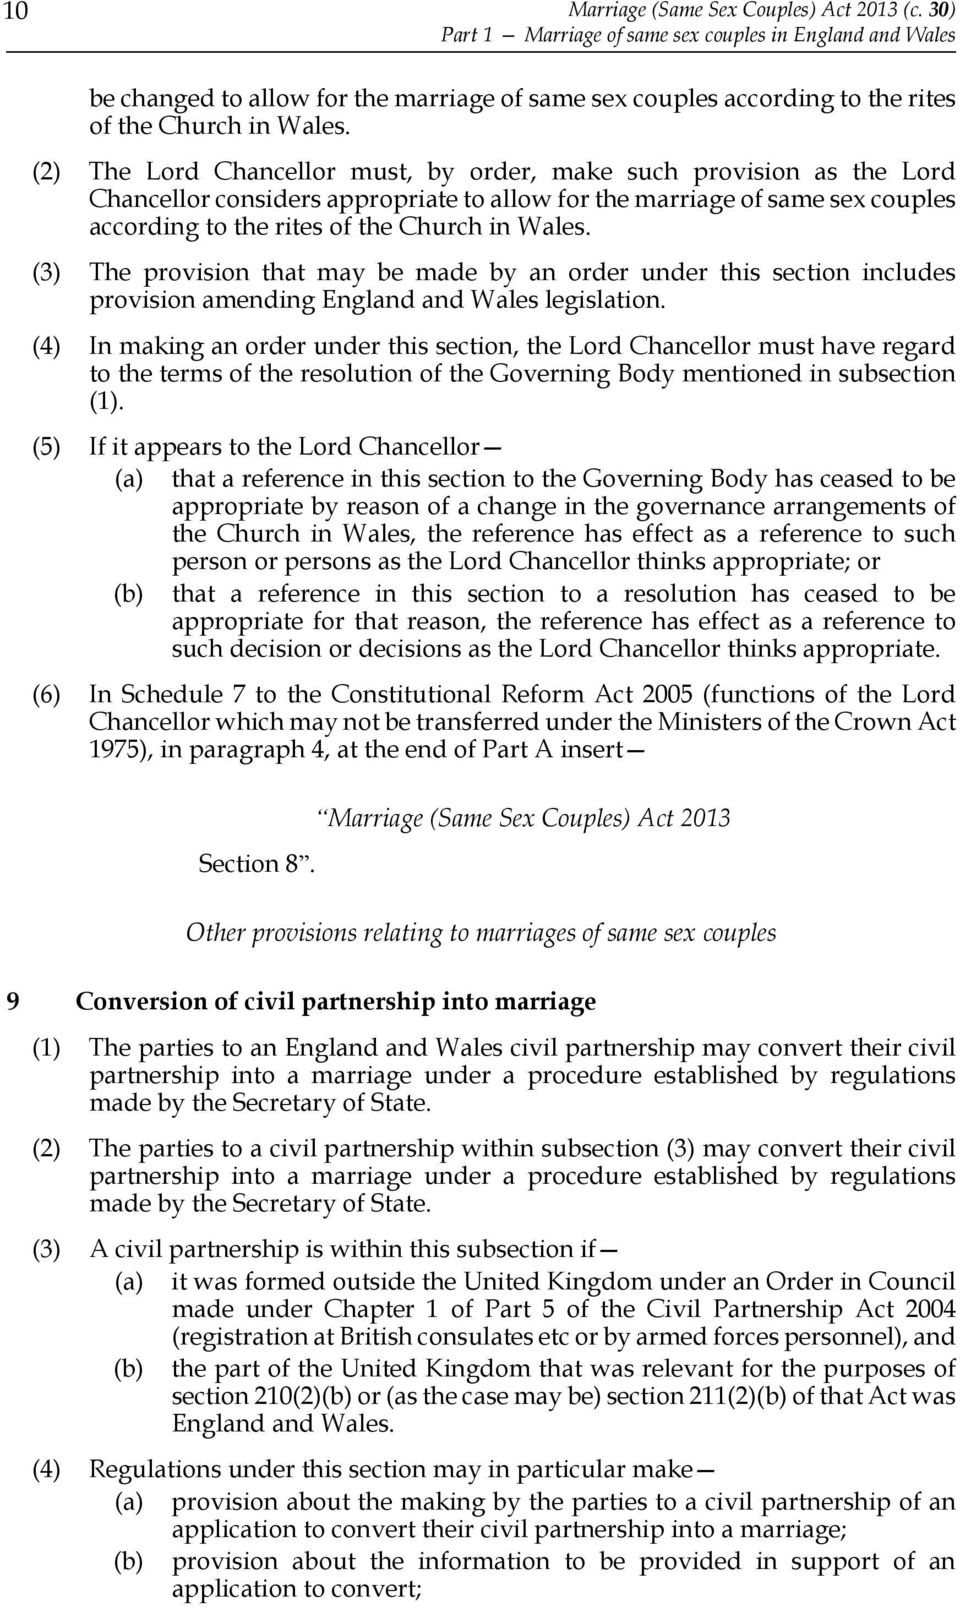 (2) The Lord Chancellor must, by order, make such provision as the Lord Chancellor considers appropriate to allow for the marriage of same sex couples according to the rites of the Church in Wales.